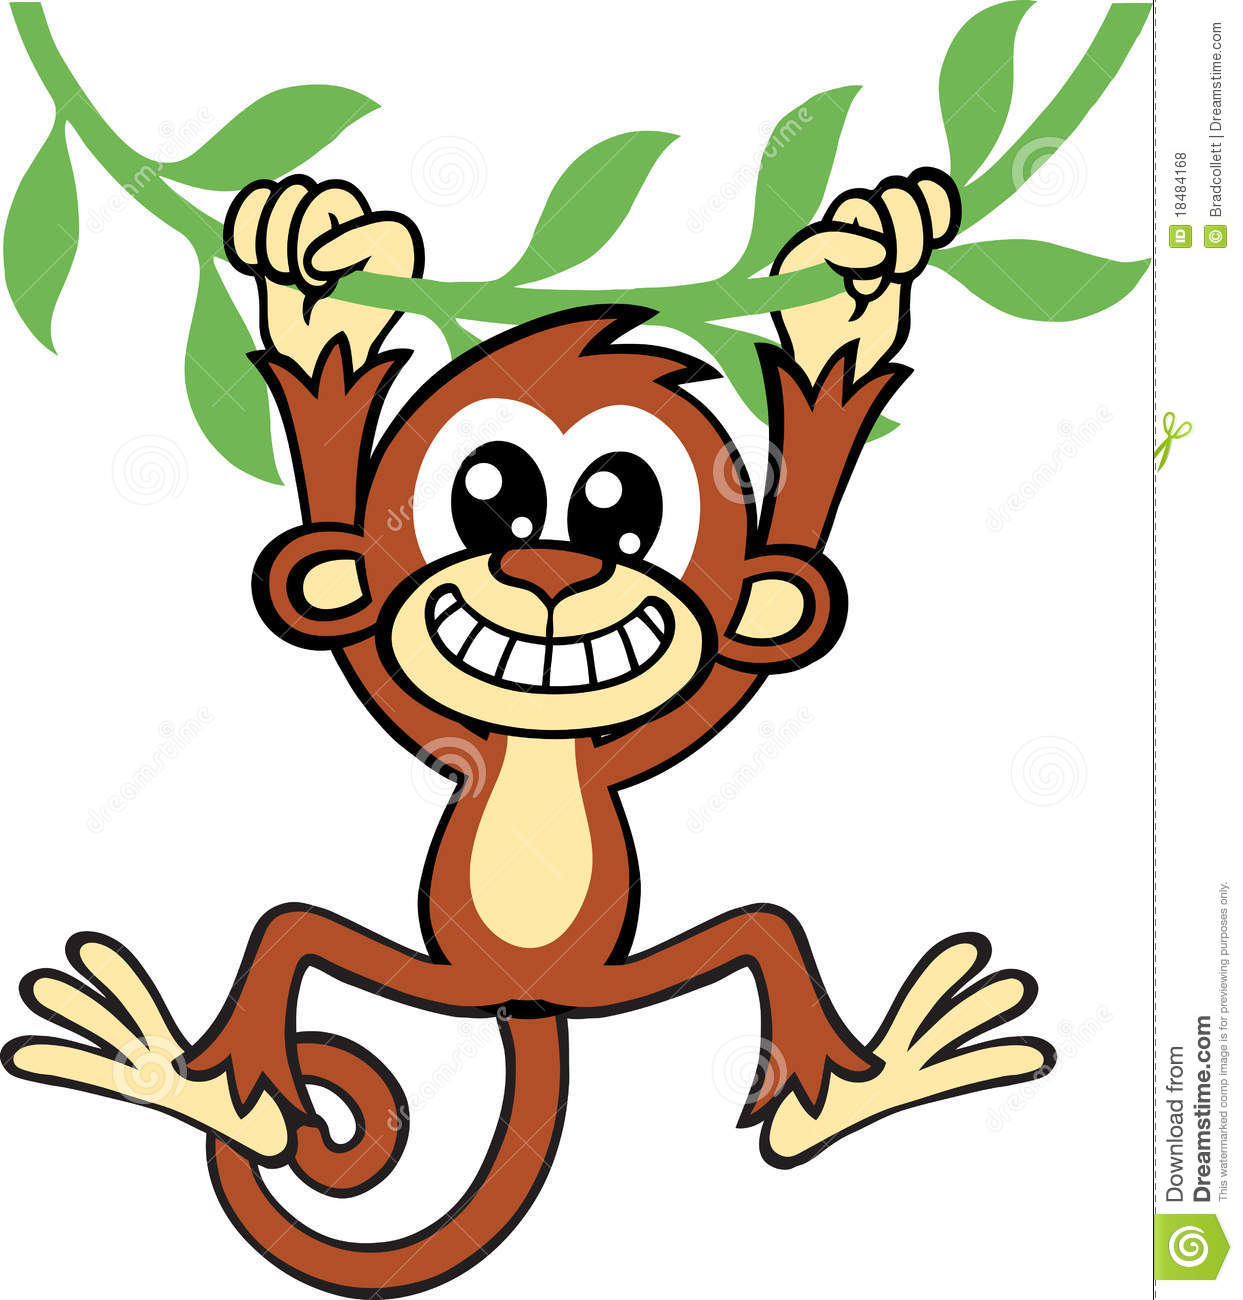 Cartoon Monkey Hanging Upside Down On A Vine Www